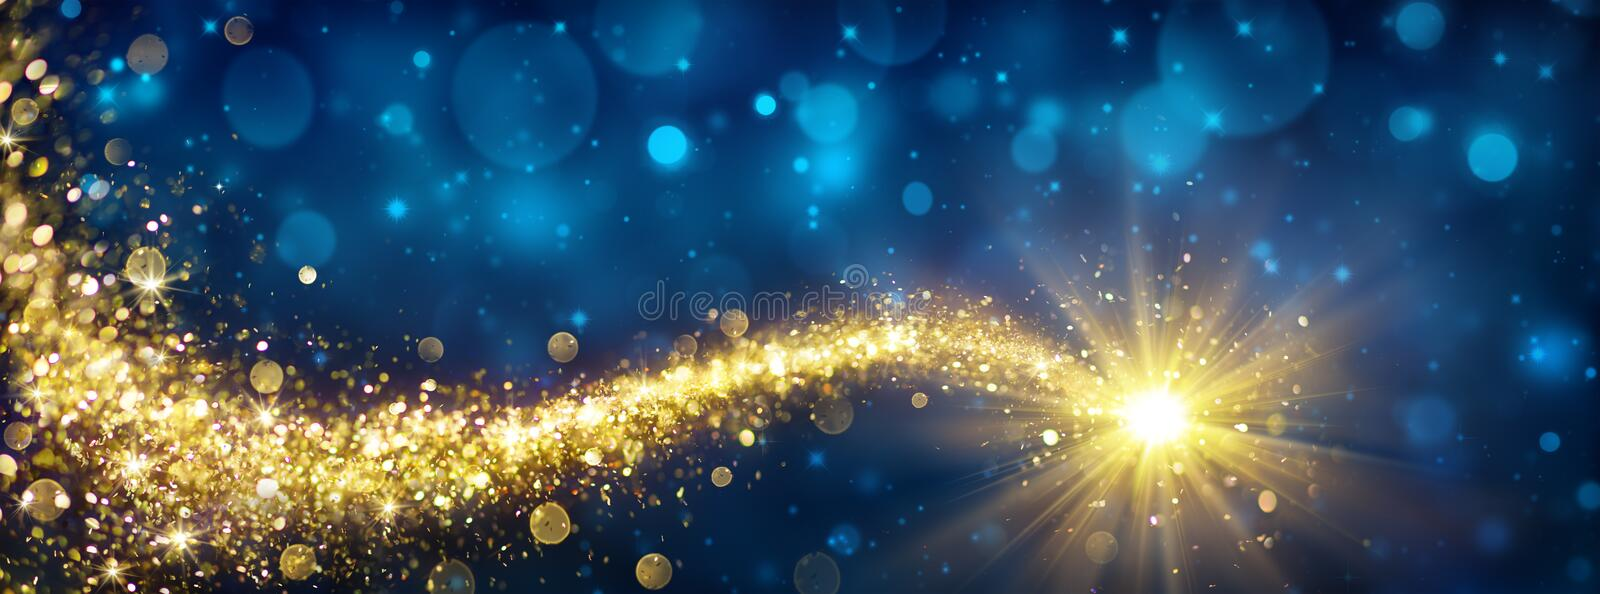 Christmas Golden Star stock illustration